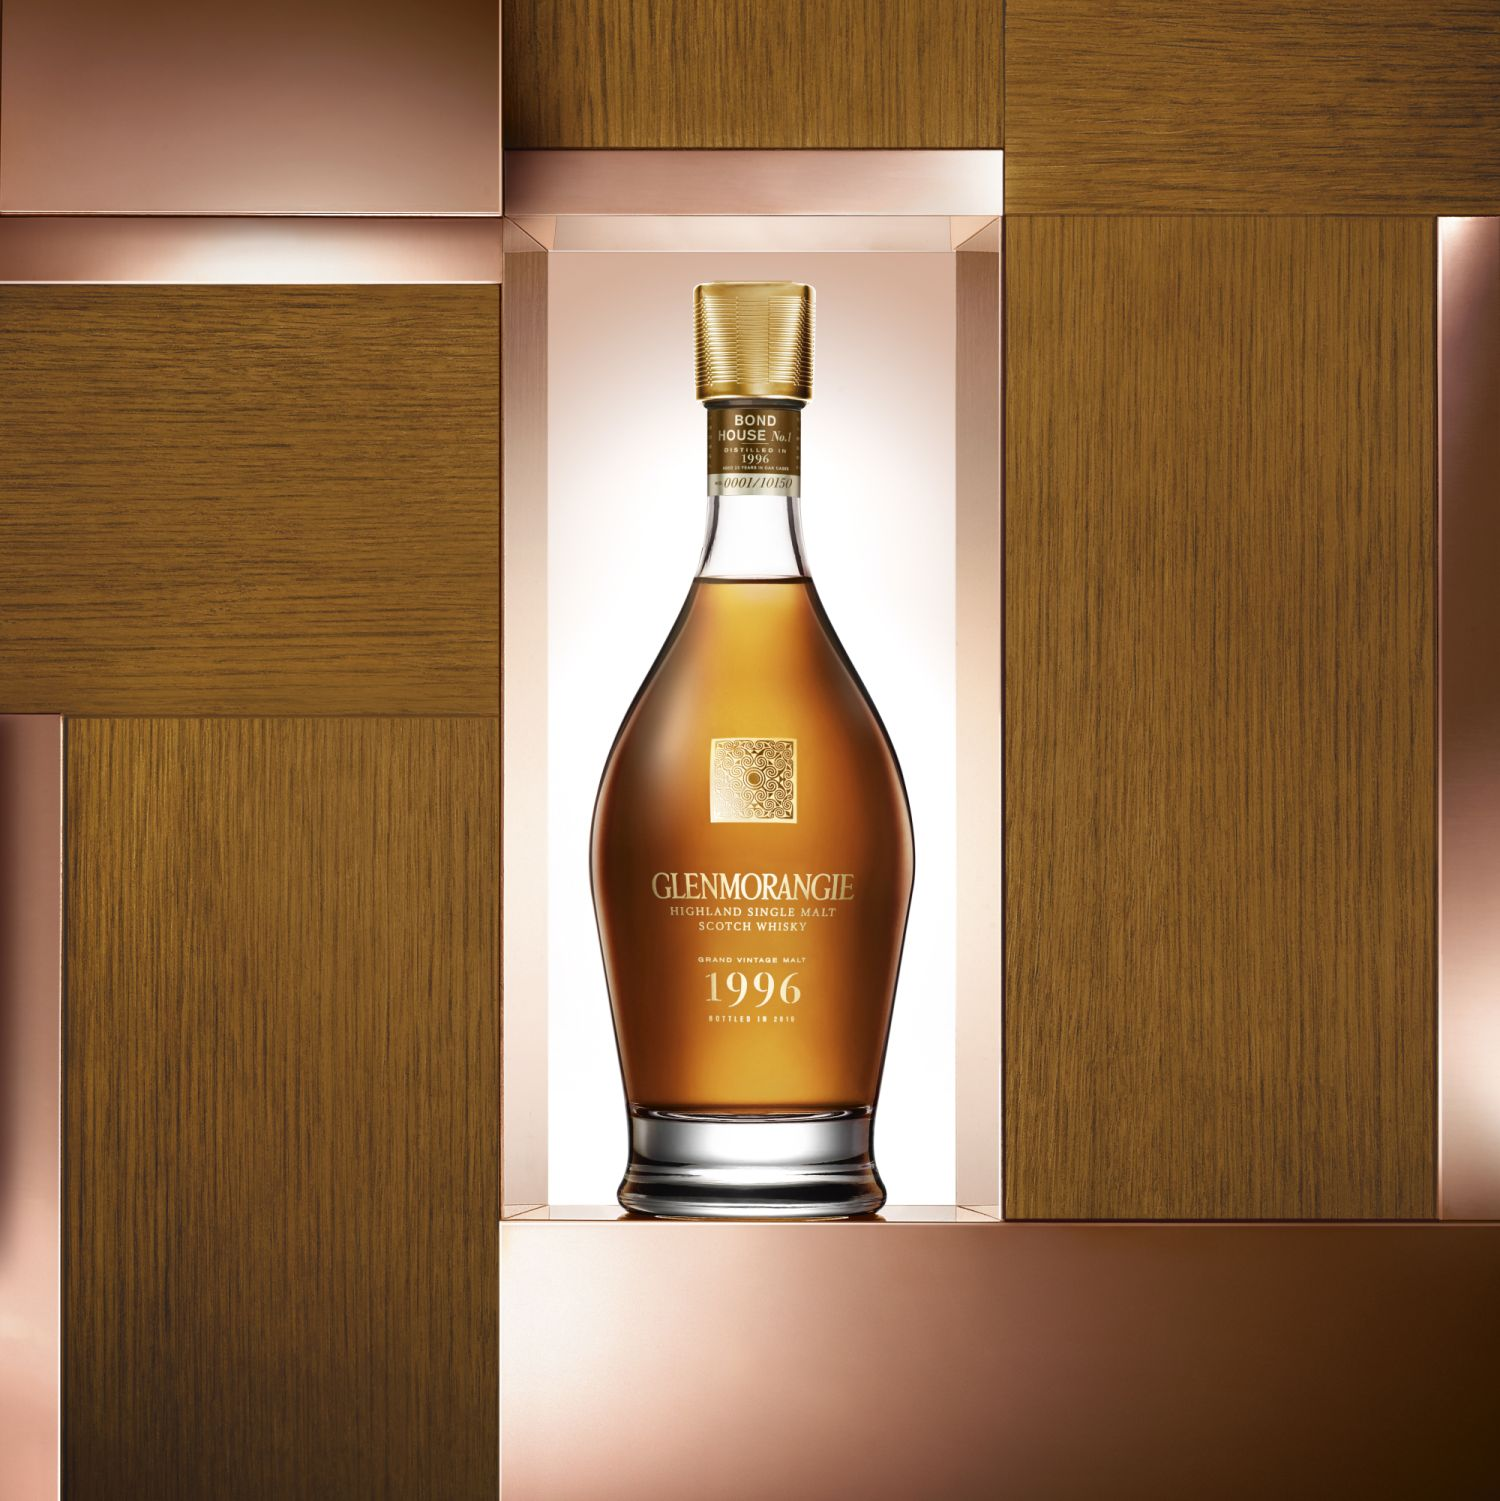 Showcasing Glenmorangie's Grand Vintage Malt